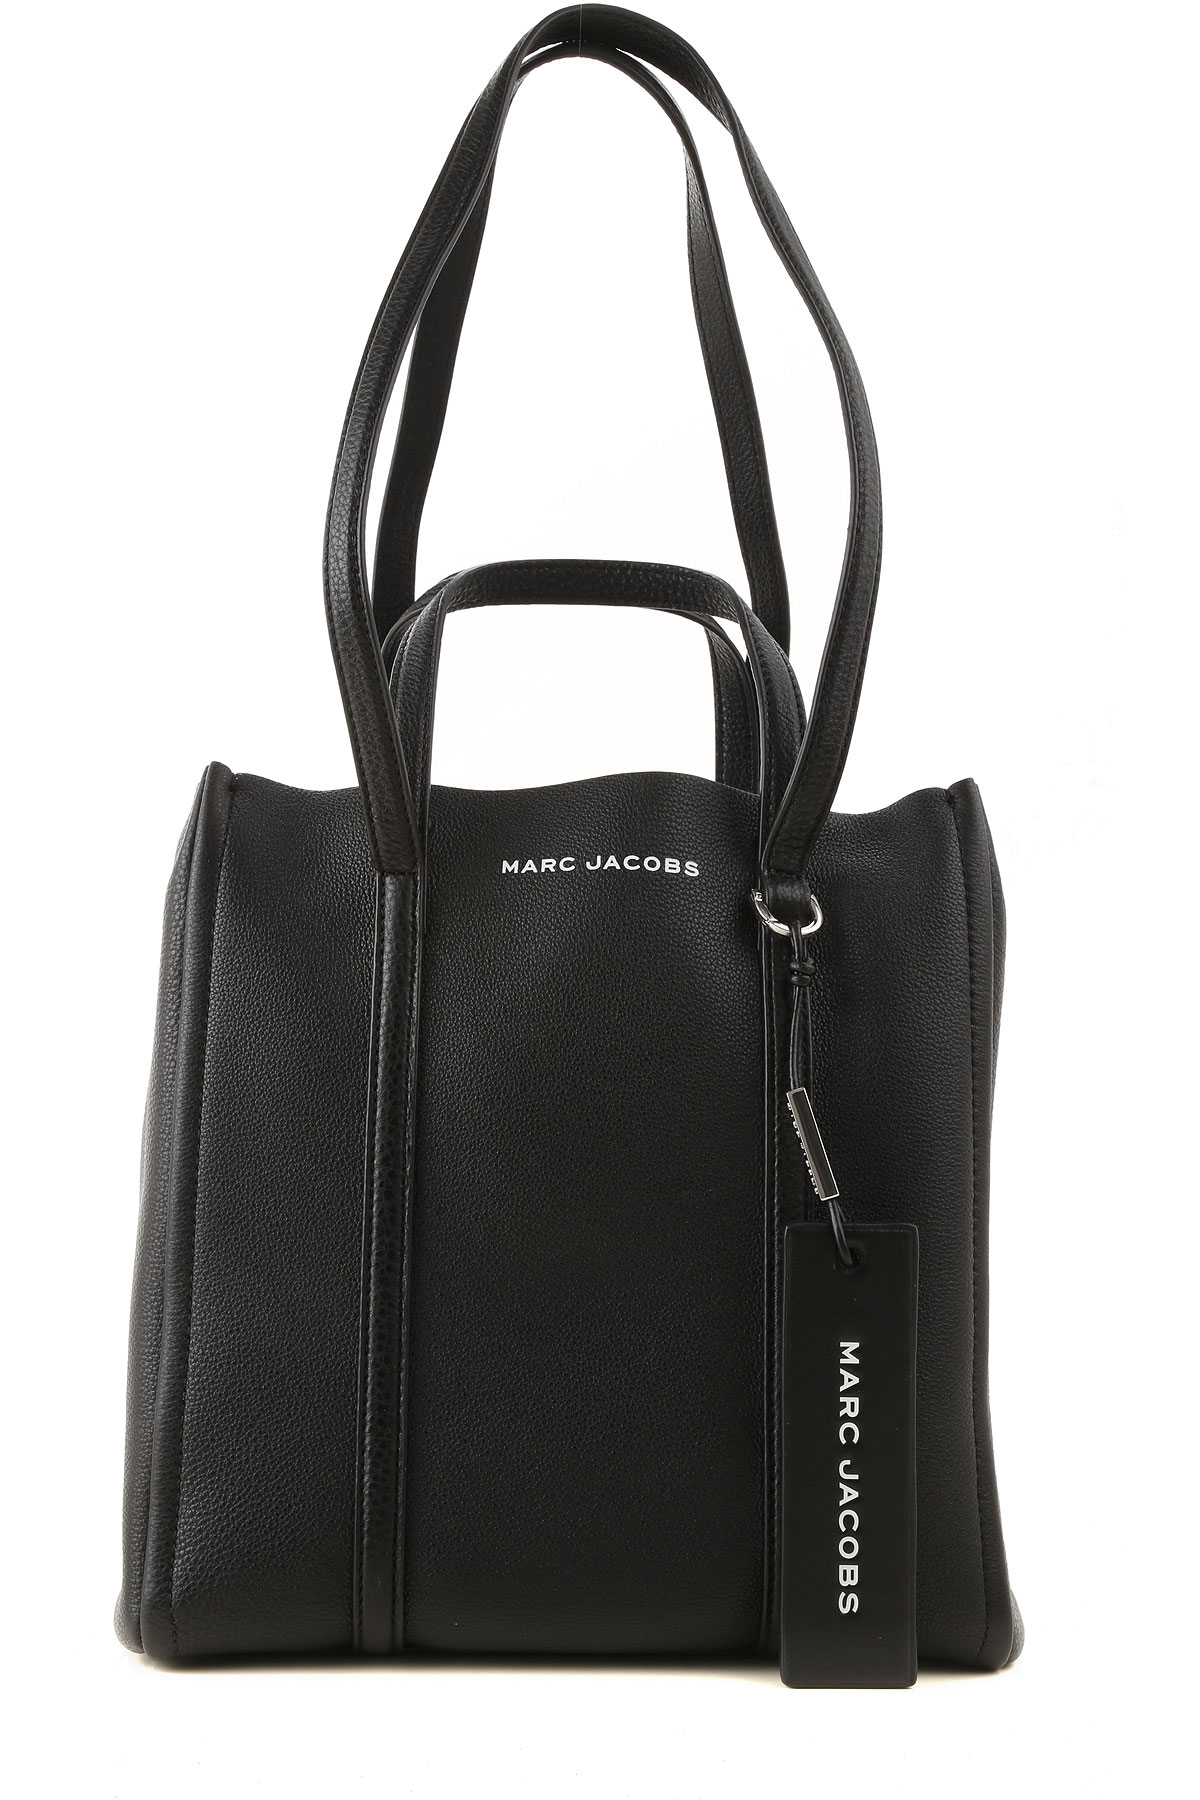 marc jacobs tote bag, black, leather, 2019